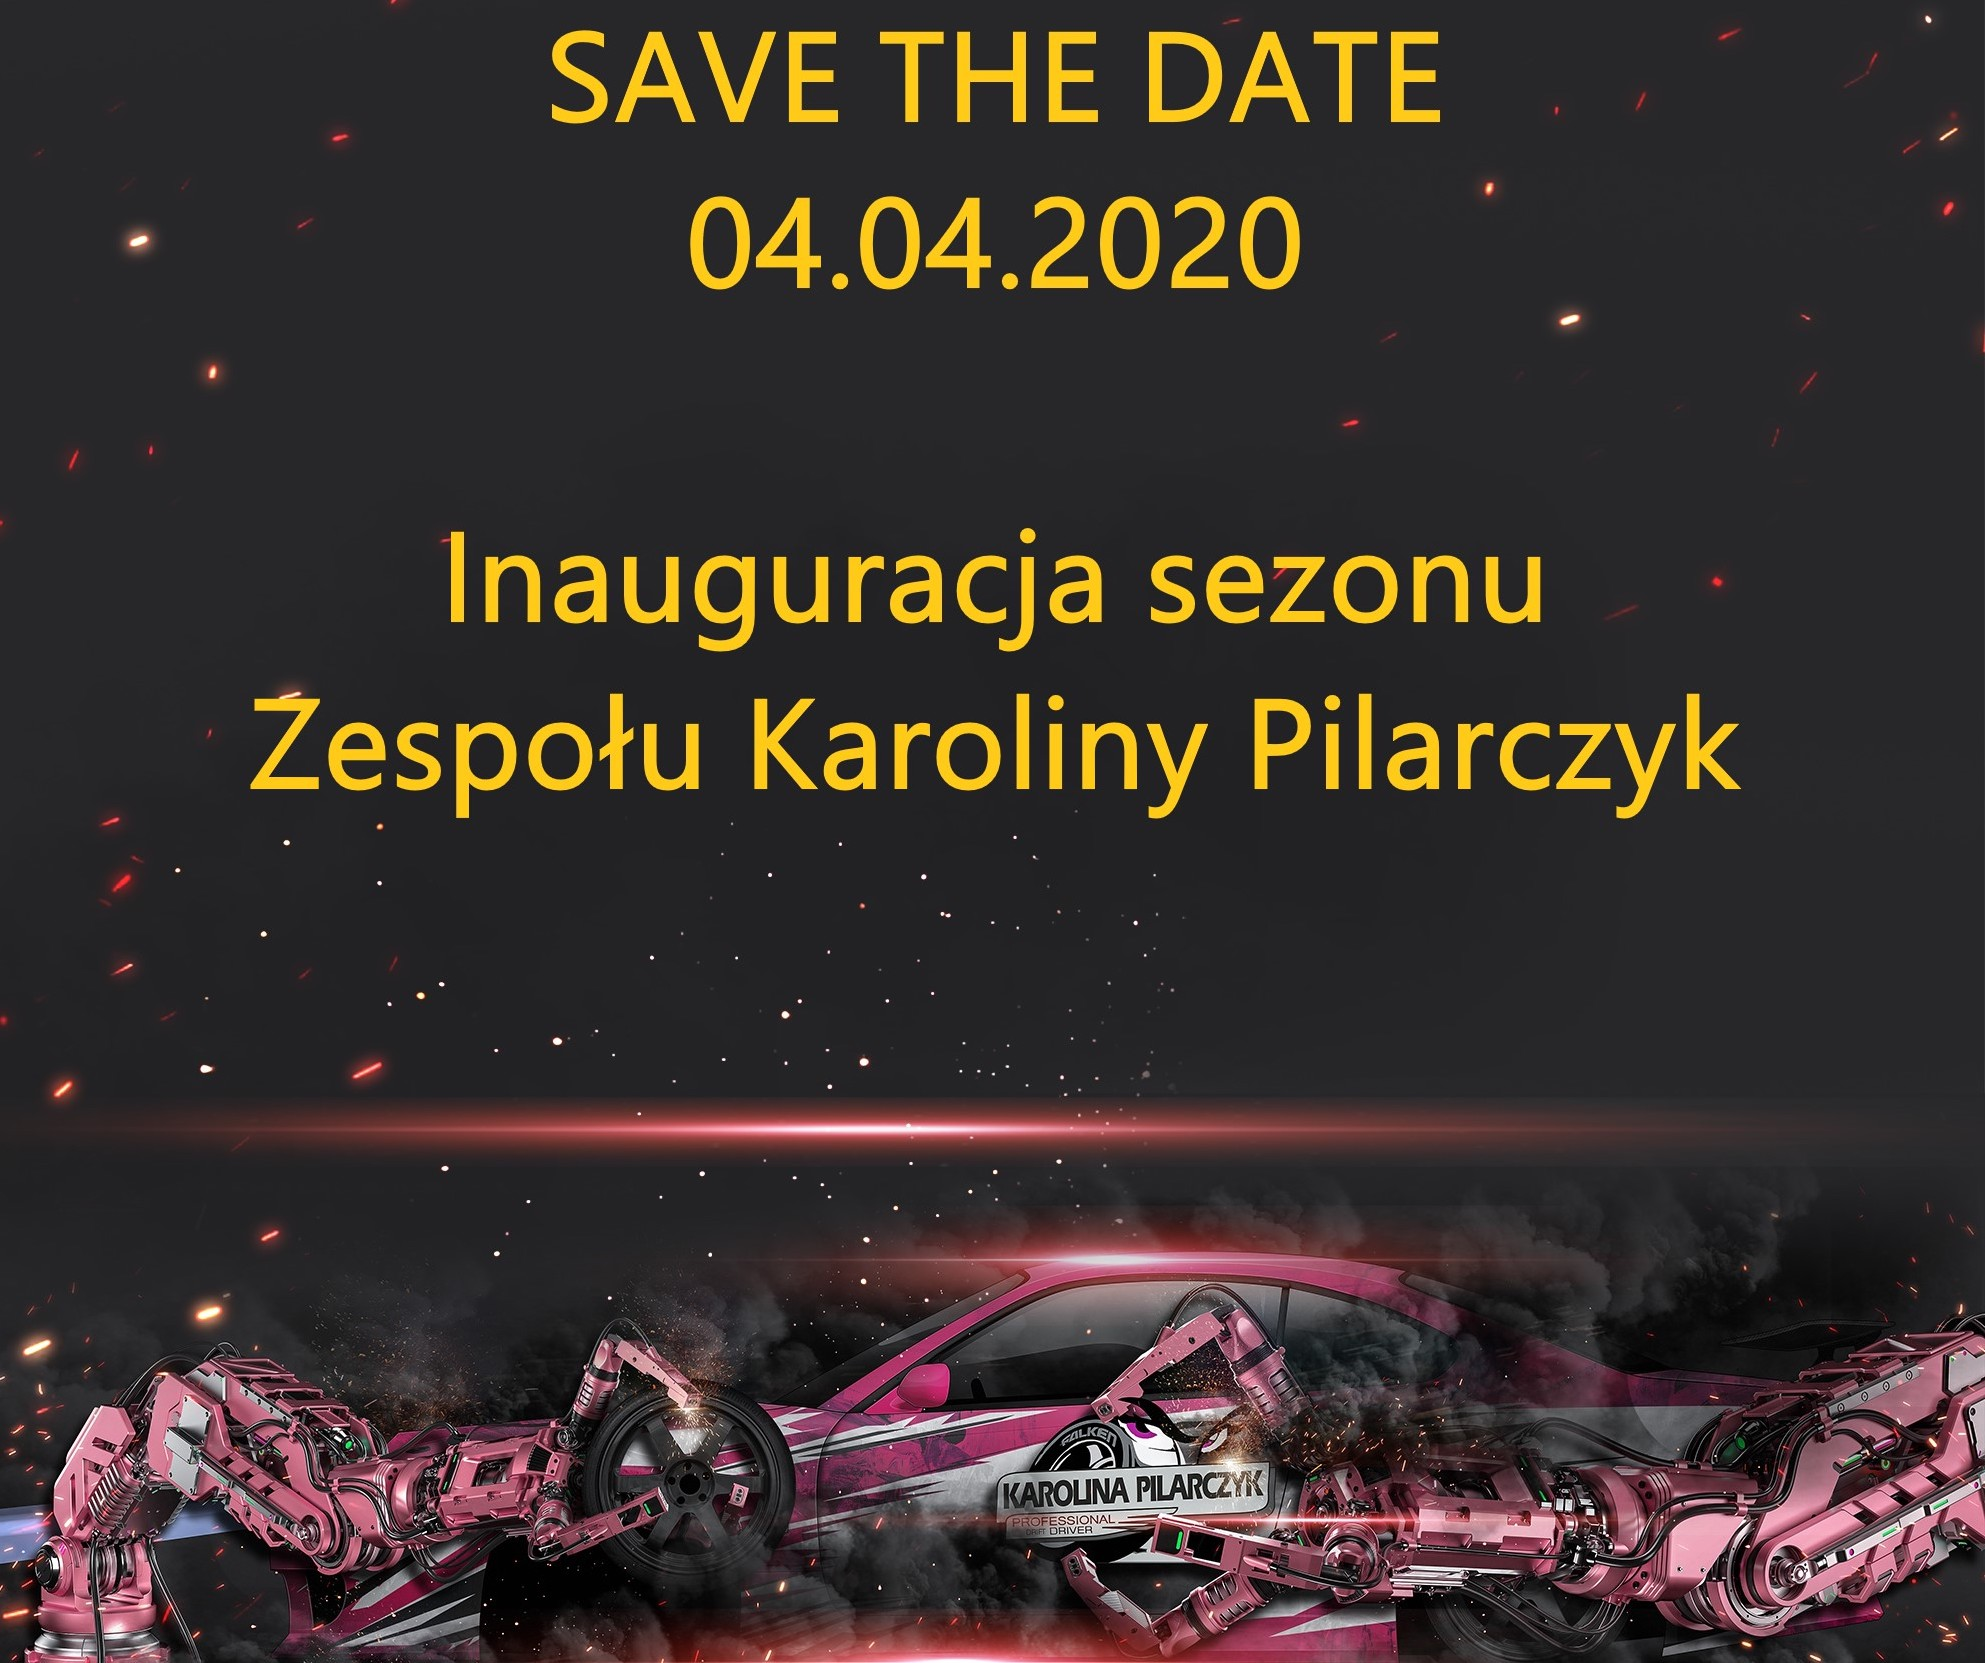 Save the date v2-kopia